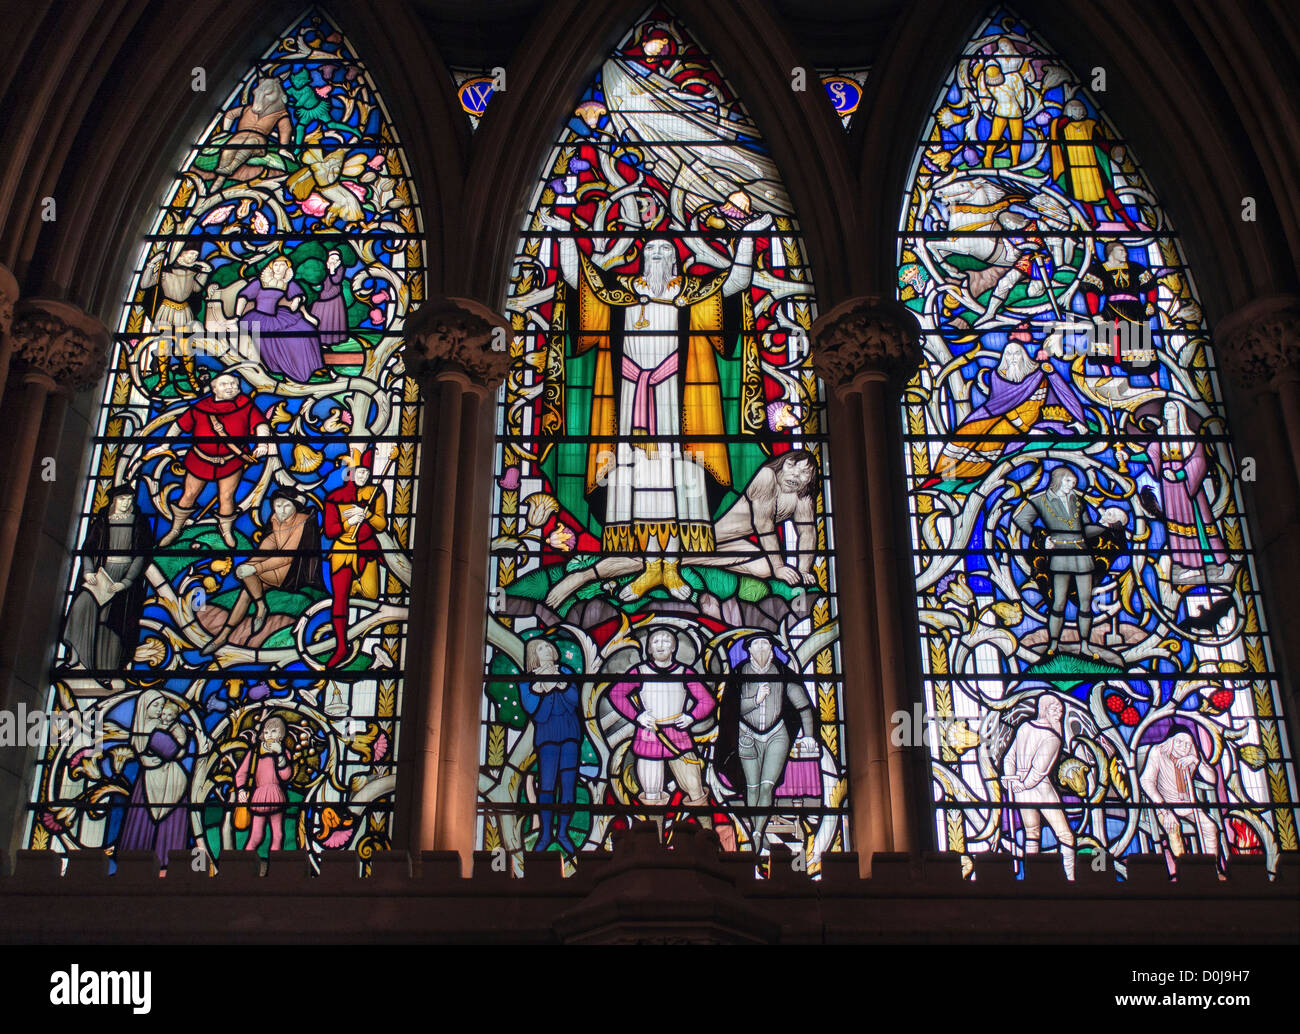 One of the stain glass windows in Southwark cathedral depicting a Shakespeare play. Stock Photo